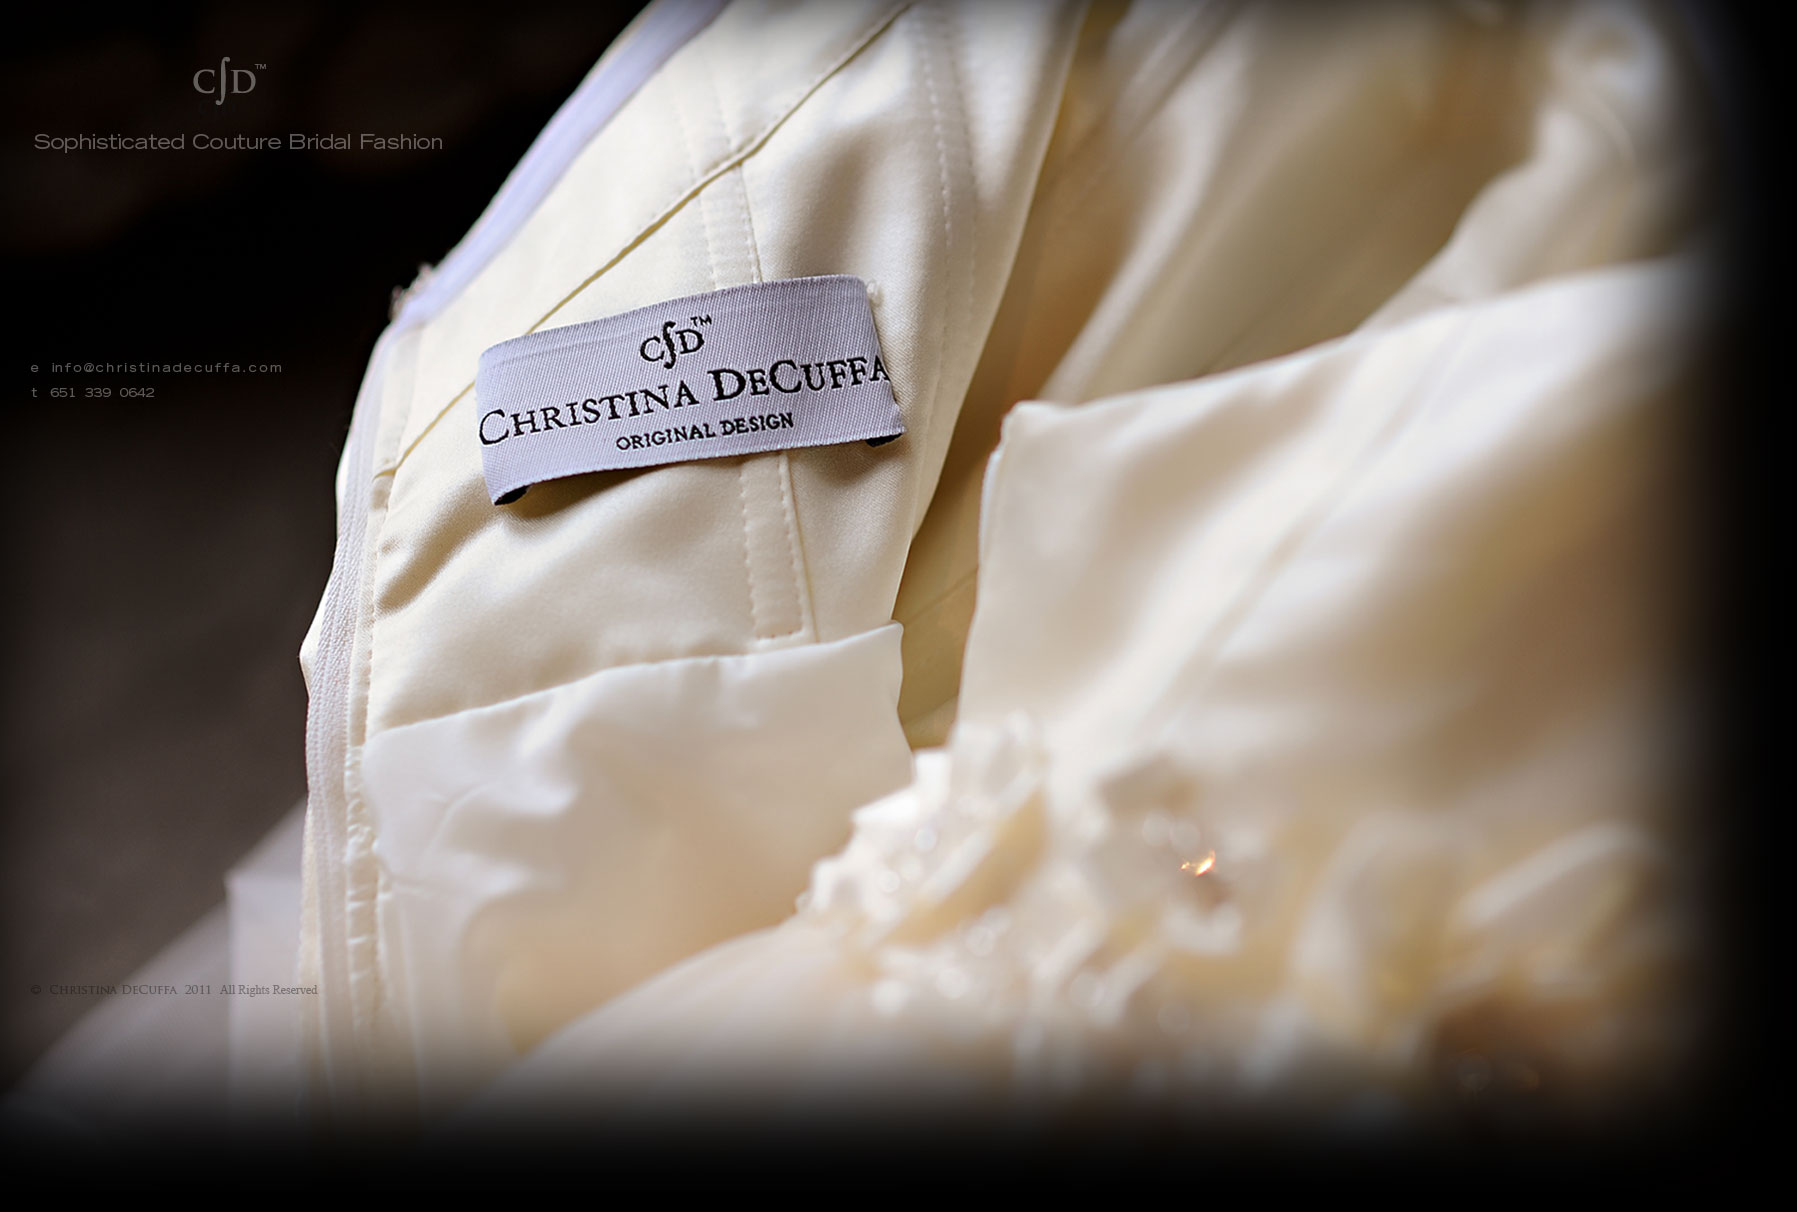 Discover Christina DeCuffa bridal gowns, unique one of a kind wedding dresses exclusively designed for you.